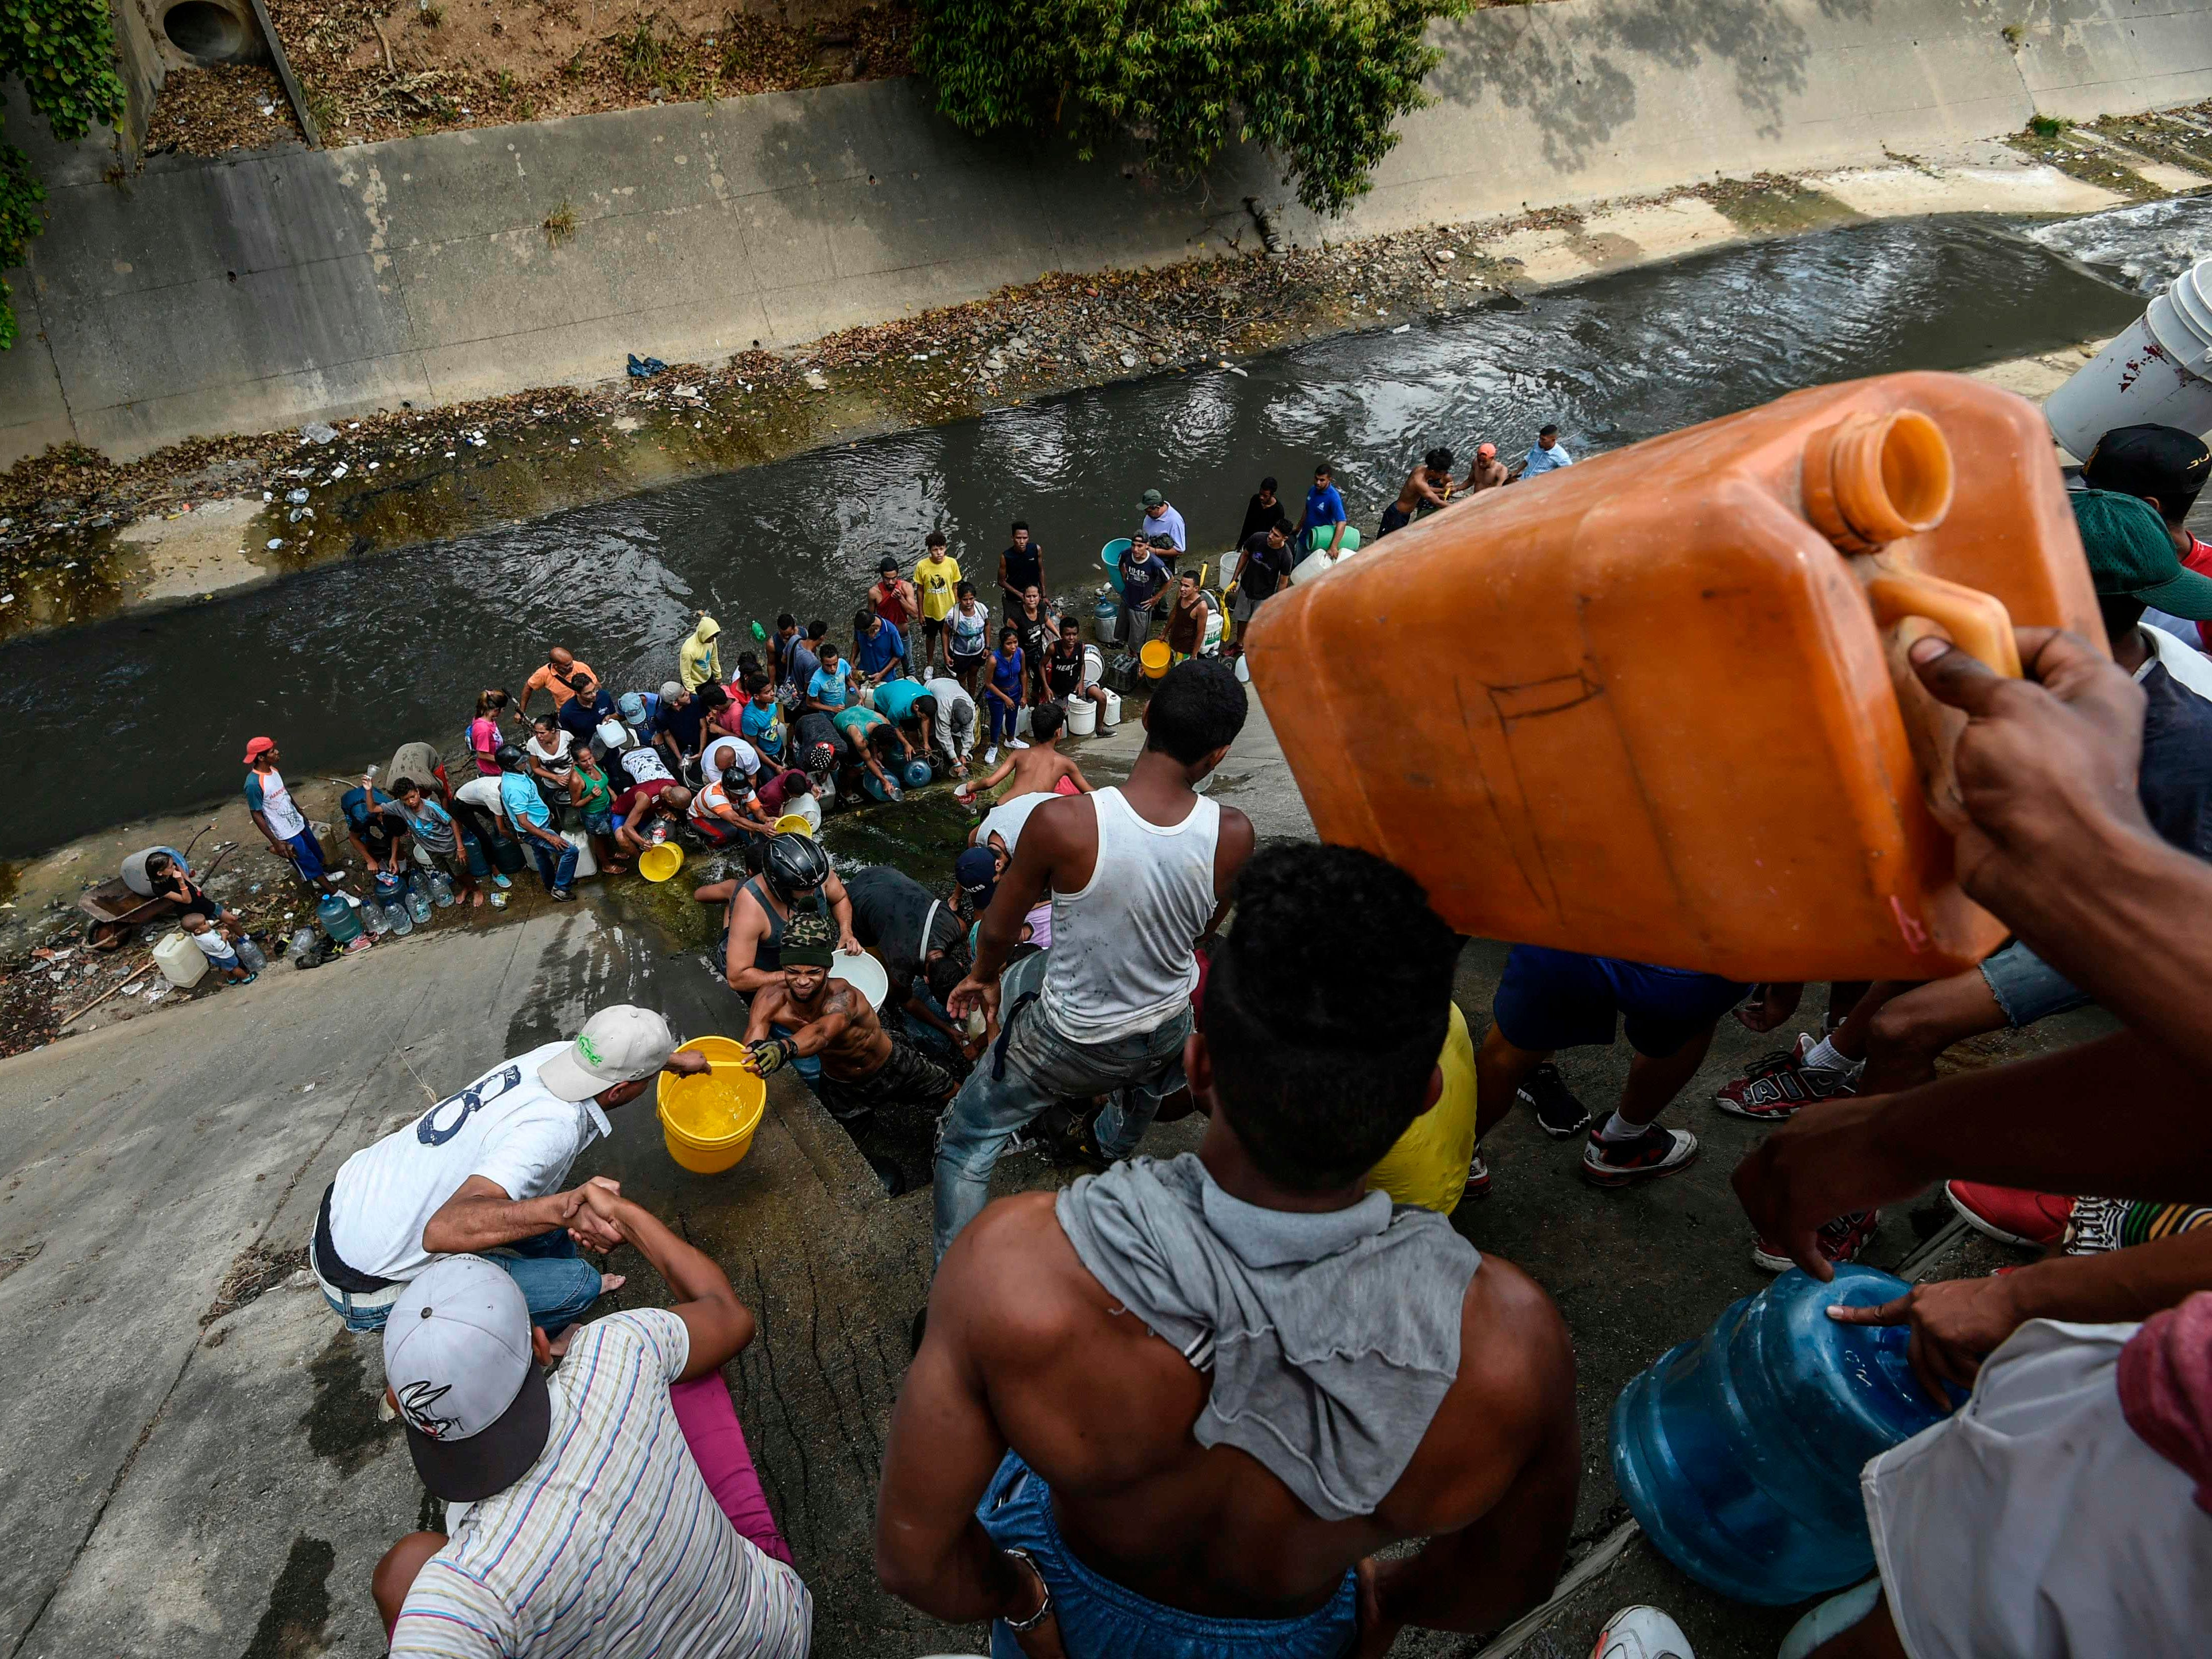 People from a leaking pipeline along the banks of the Guaire River in Caracas on March 11, 2019.